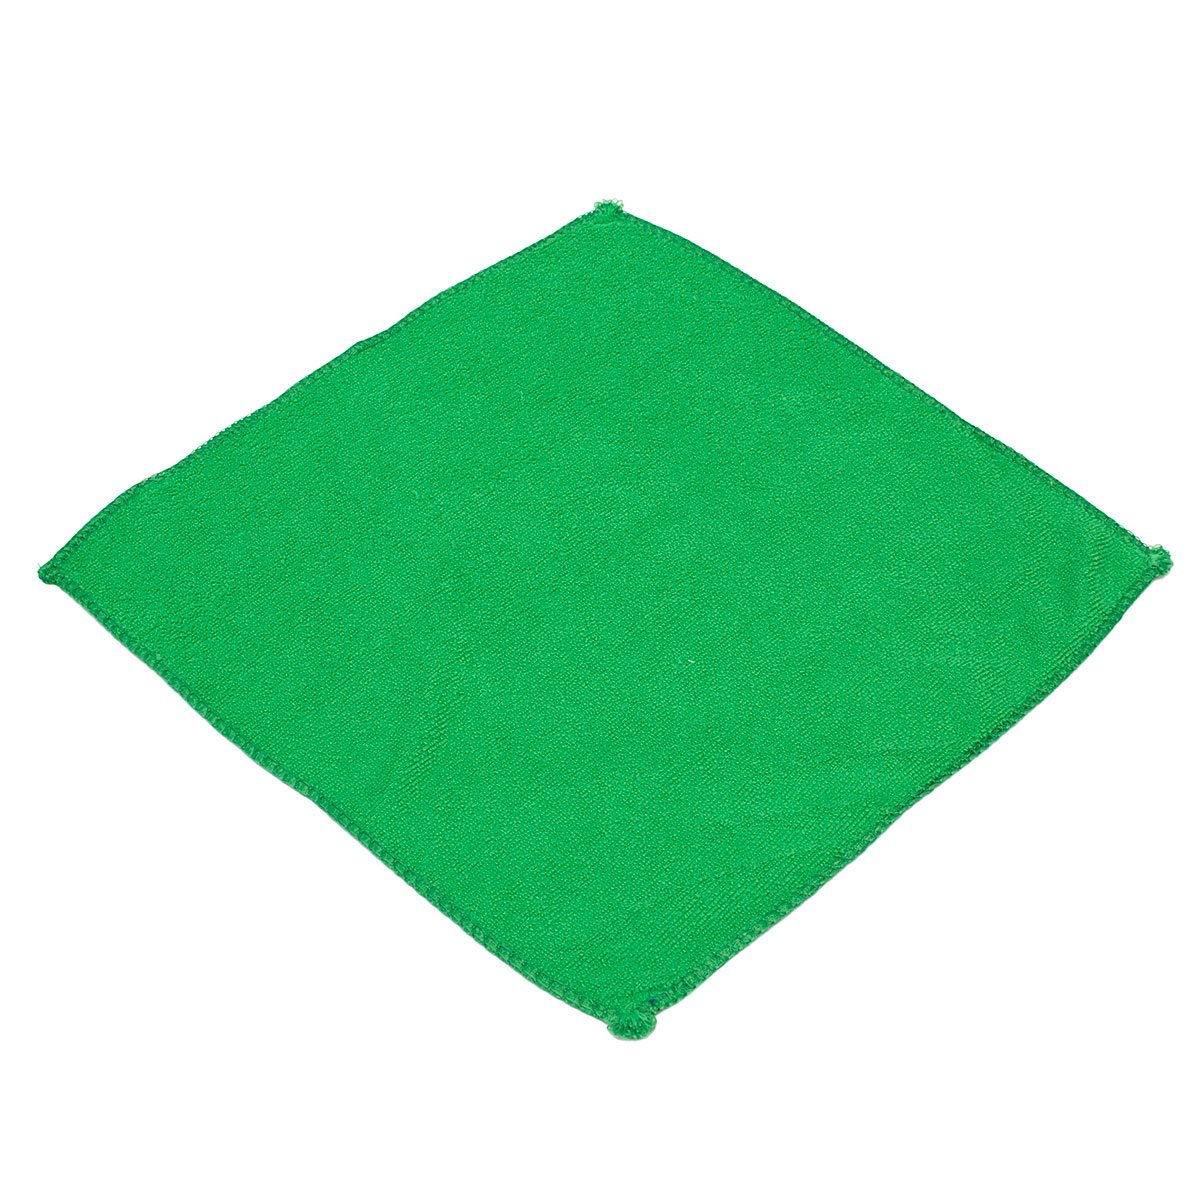 10pcs Green Microfibre Cleaning Auto Car Detailing Soft Cloths Wash Towel Duster(China (Mainland))